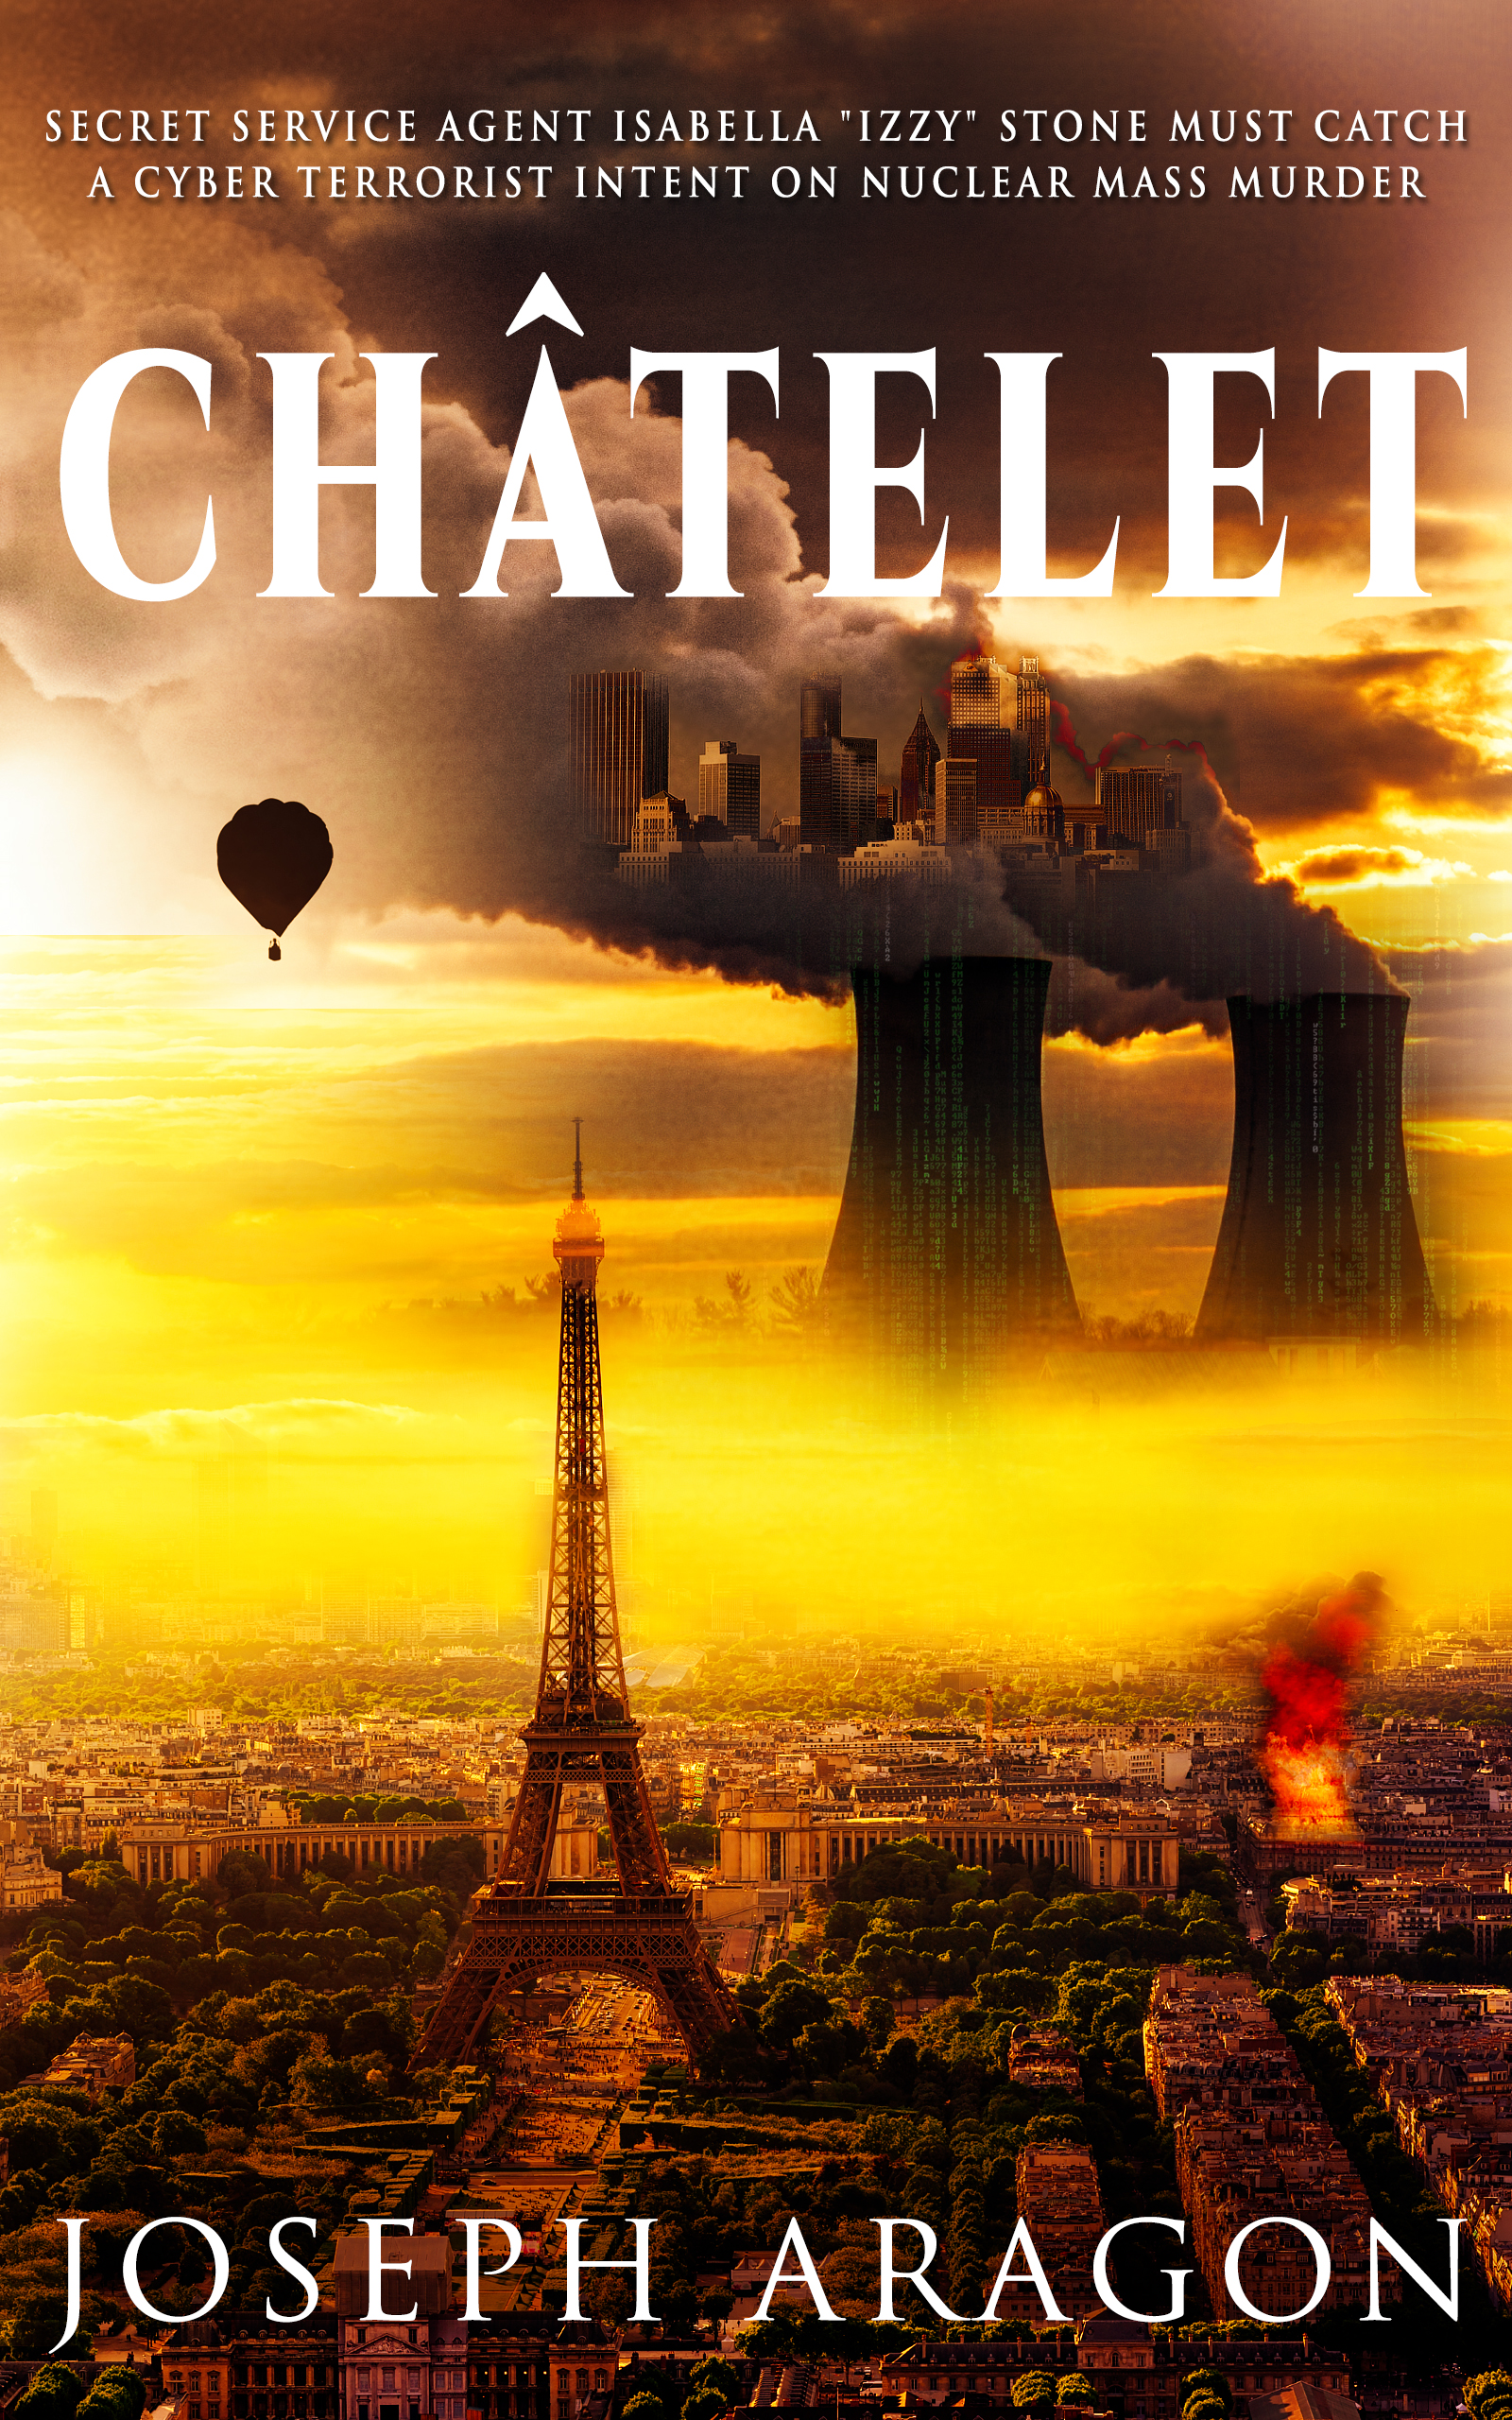 """A Cyberterrorist Plots Mass Murder by Hacking Nuclear Power Plants in Chilling New Novel: """"CHÂTELET"""""""